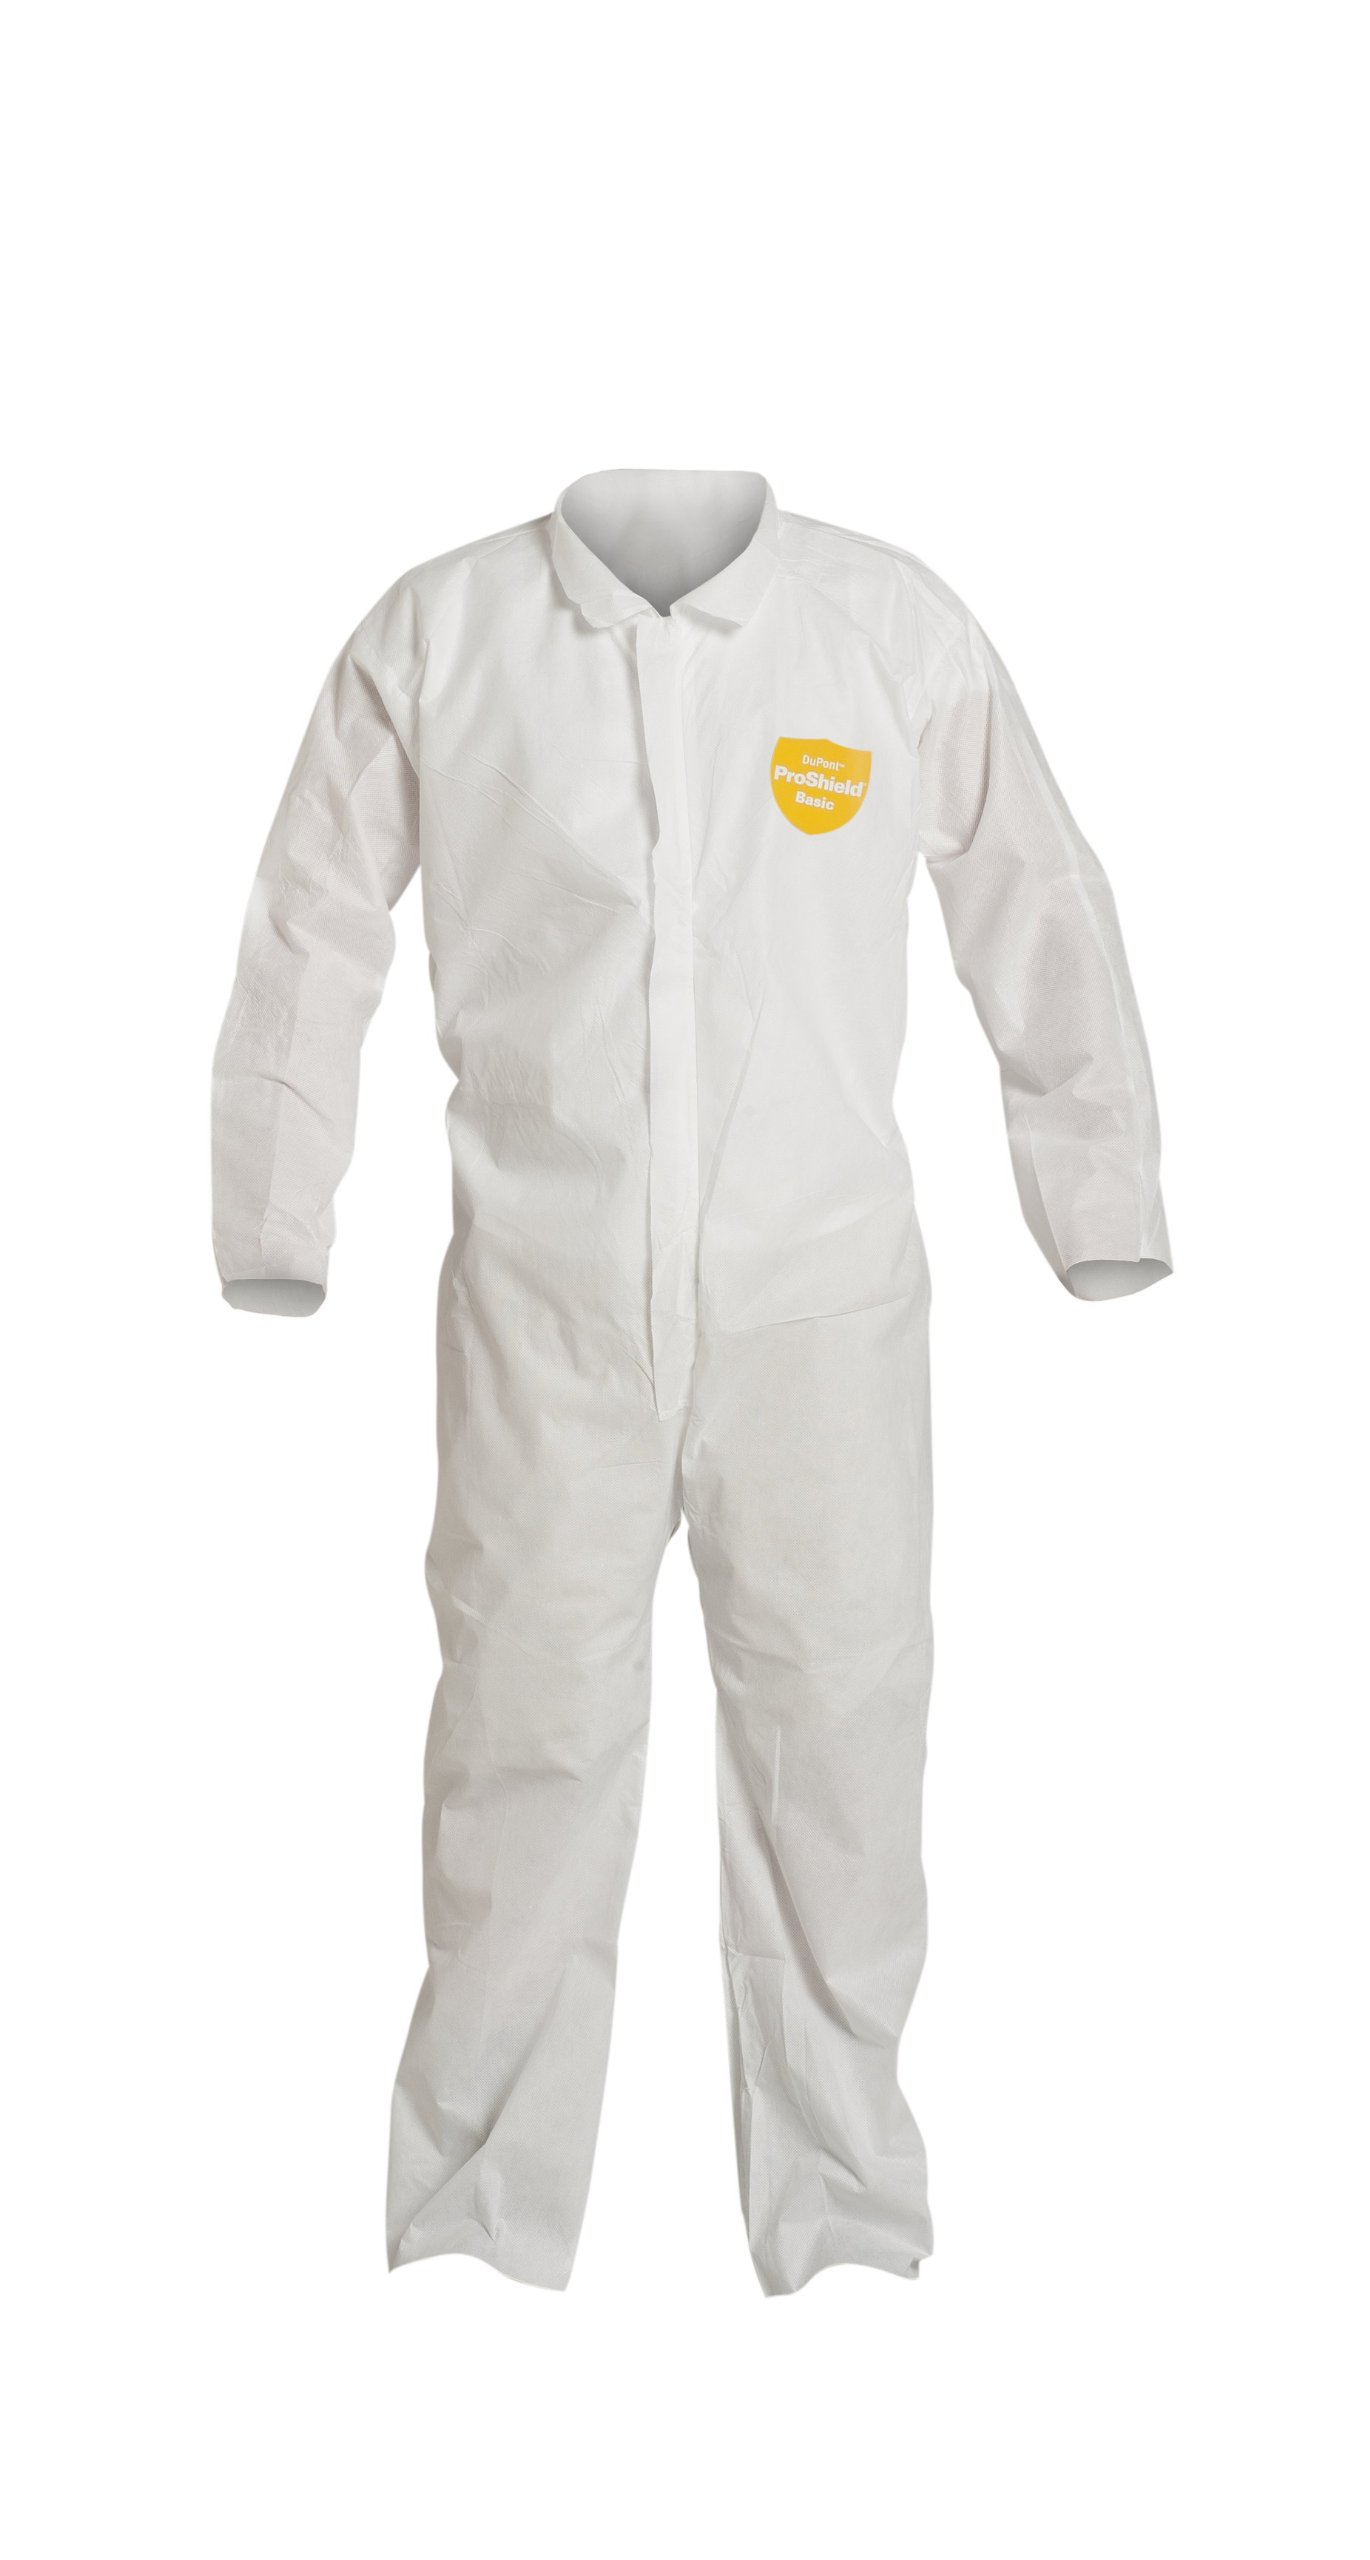 DuPont ProShield 10 PB120S Protective Coverall with Serged Seams, Disposable, Open Cuff and Ankles, X-Large, White (Pack of 25) by DuPont (Image #1)